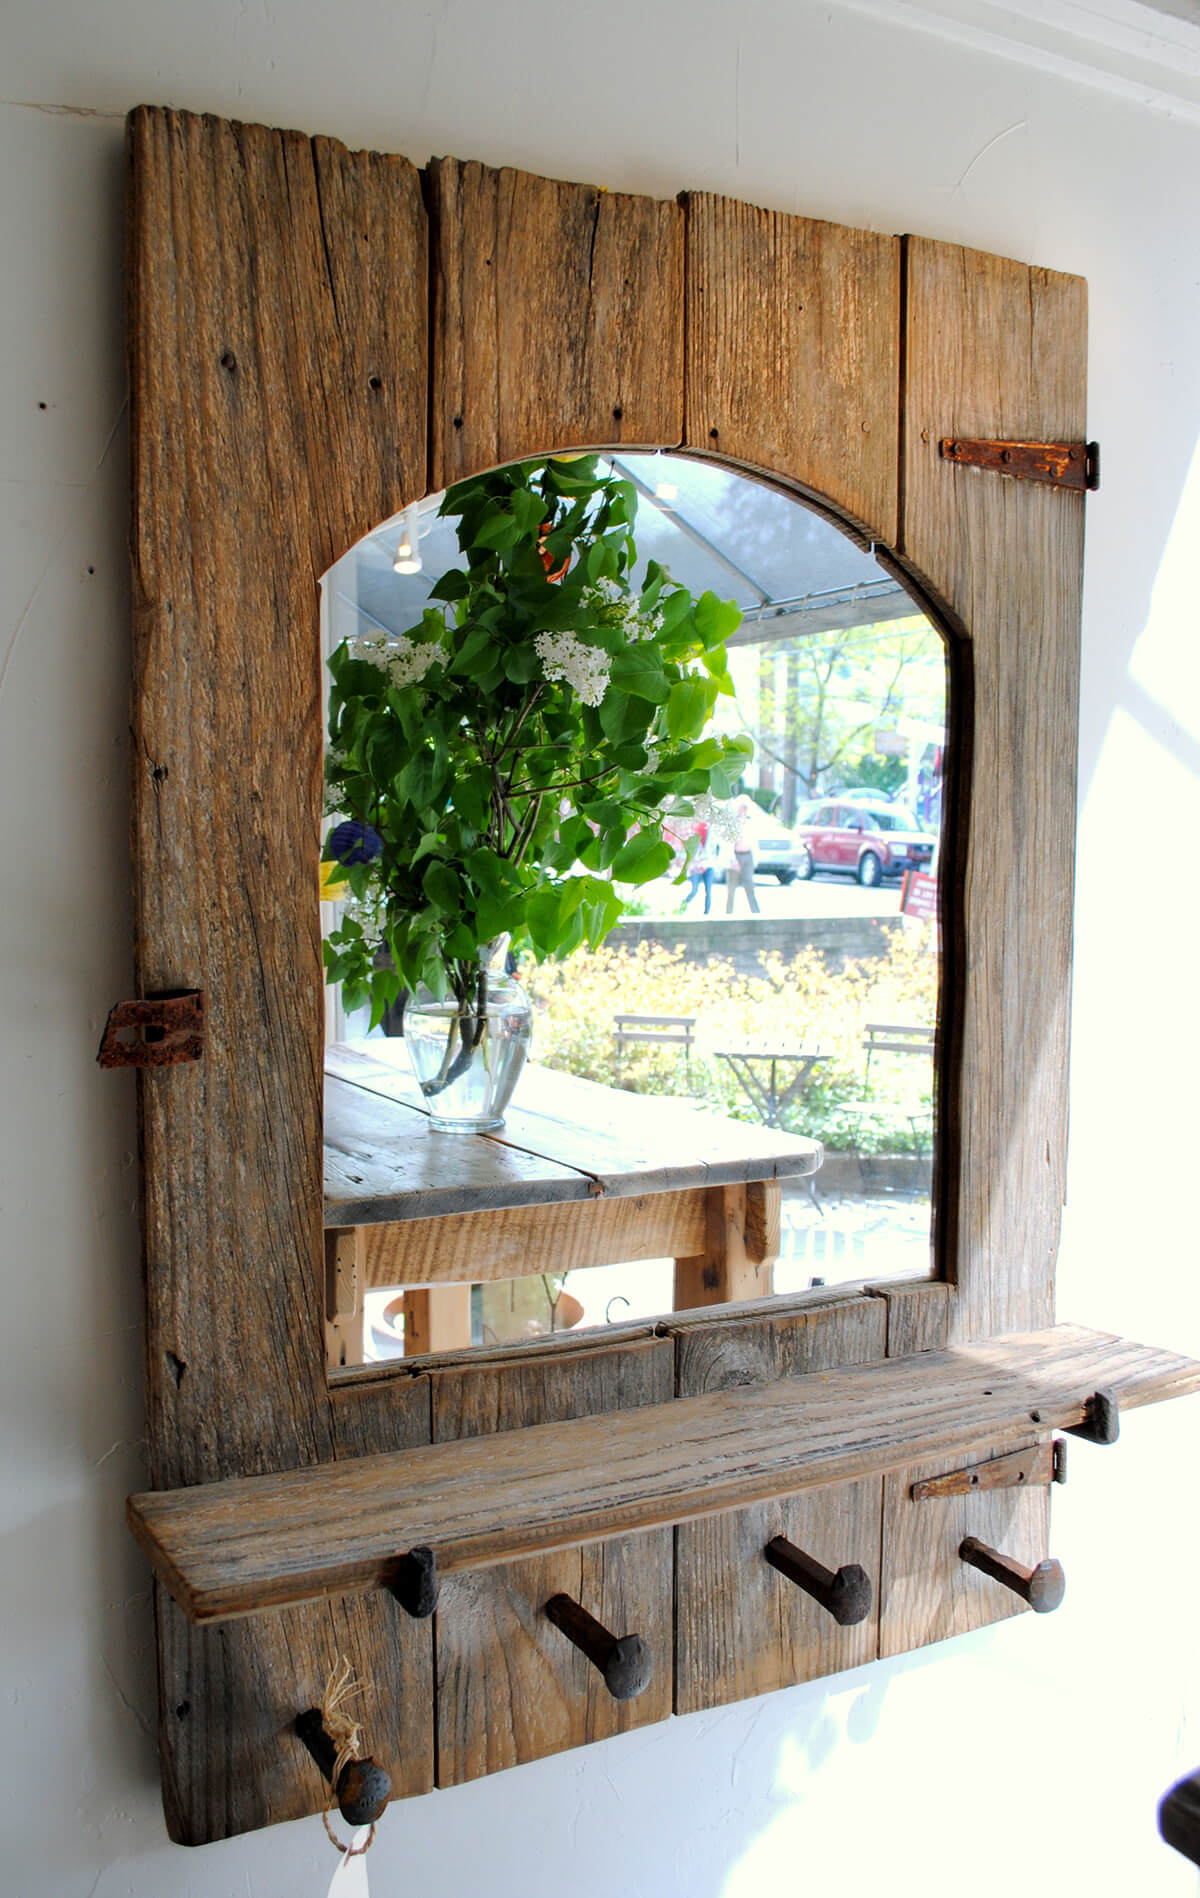 kitchen ideas for old farmhouse with 13 Farmhouse Mirror Ideas Homebnc on Modern Farmhouse Dining Room also A1fa744a E7fc 4b43 B619 04da895b365c further 13 Farmhouse Mirror Ideas Homebnc as well La Cuisine Style C agne Decors Chaleureux Vintage additionally Kitchen Table With Built In Bench Stone Fire Pit Designs Patio Contemporary With Bar Bbq Concrete Deck Together Captivating Theme.